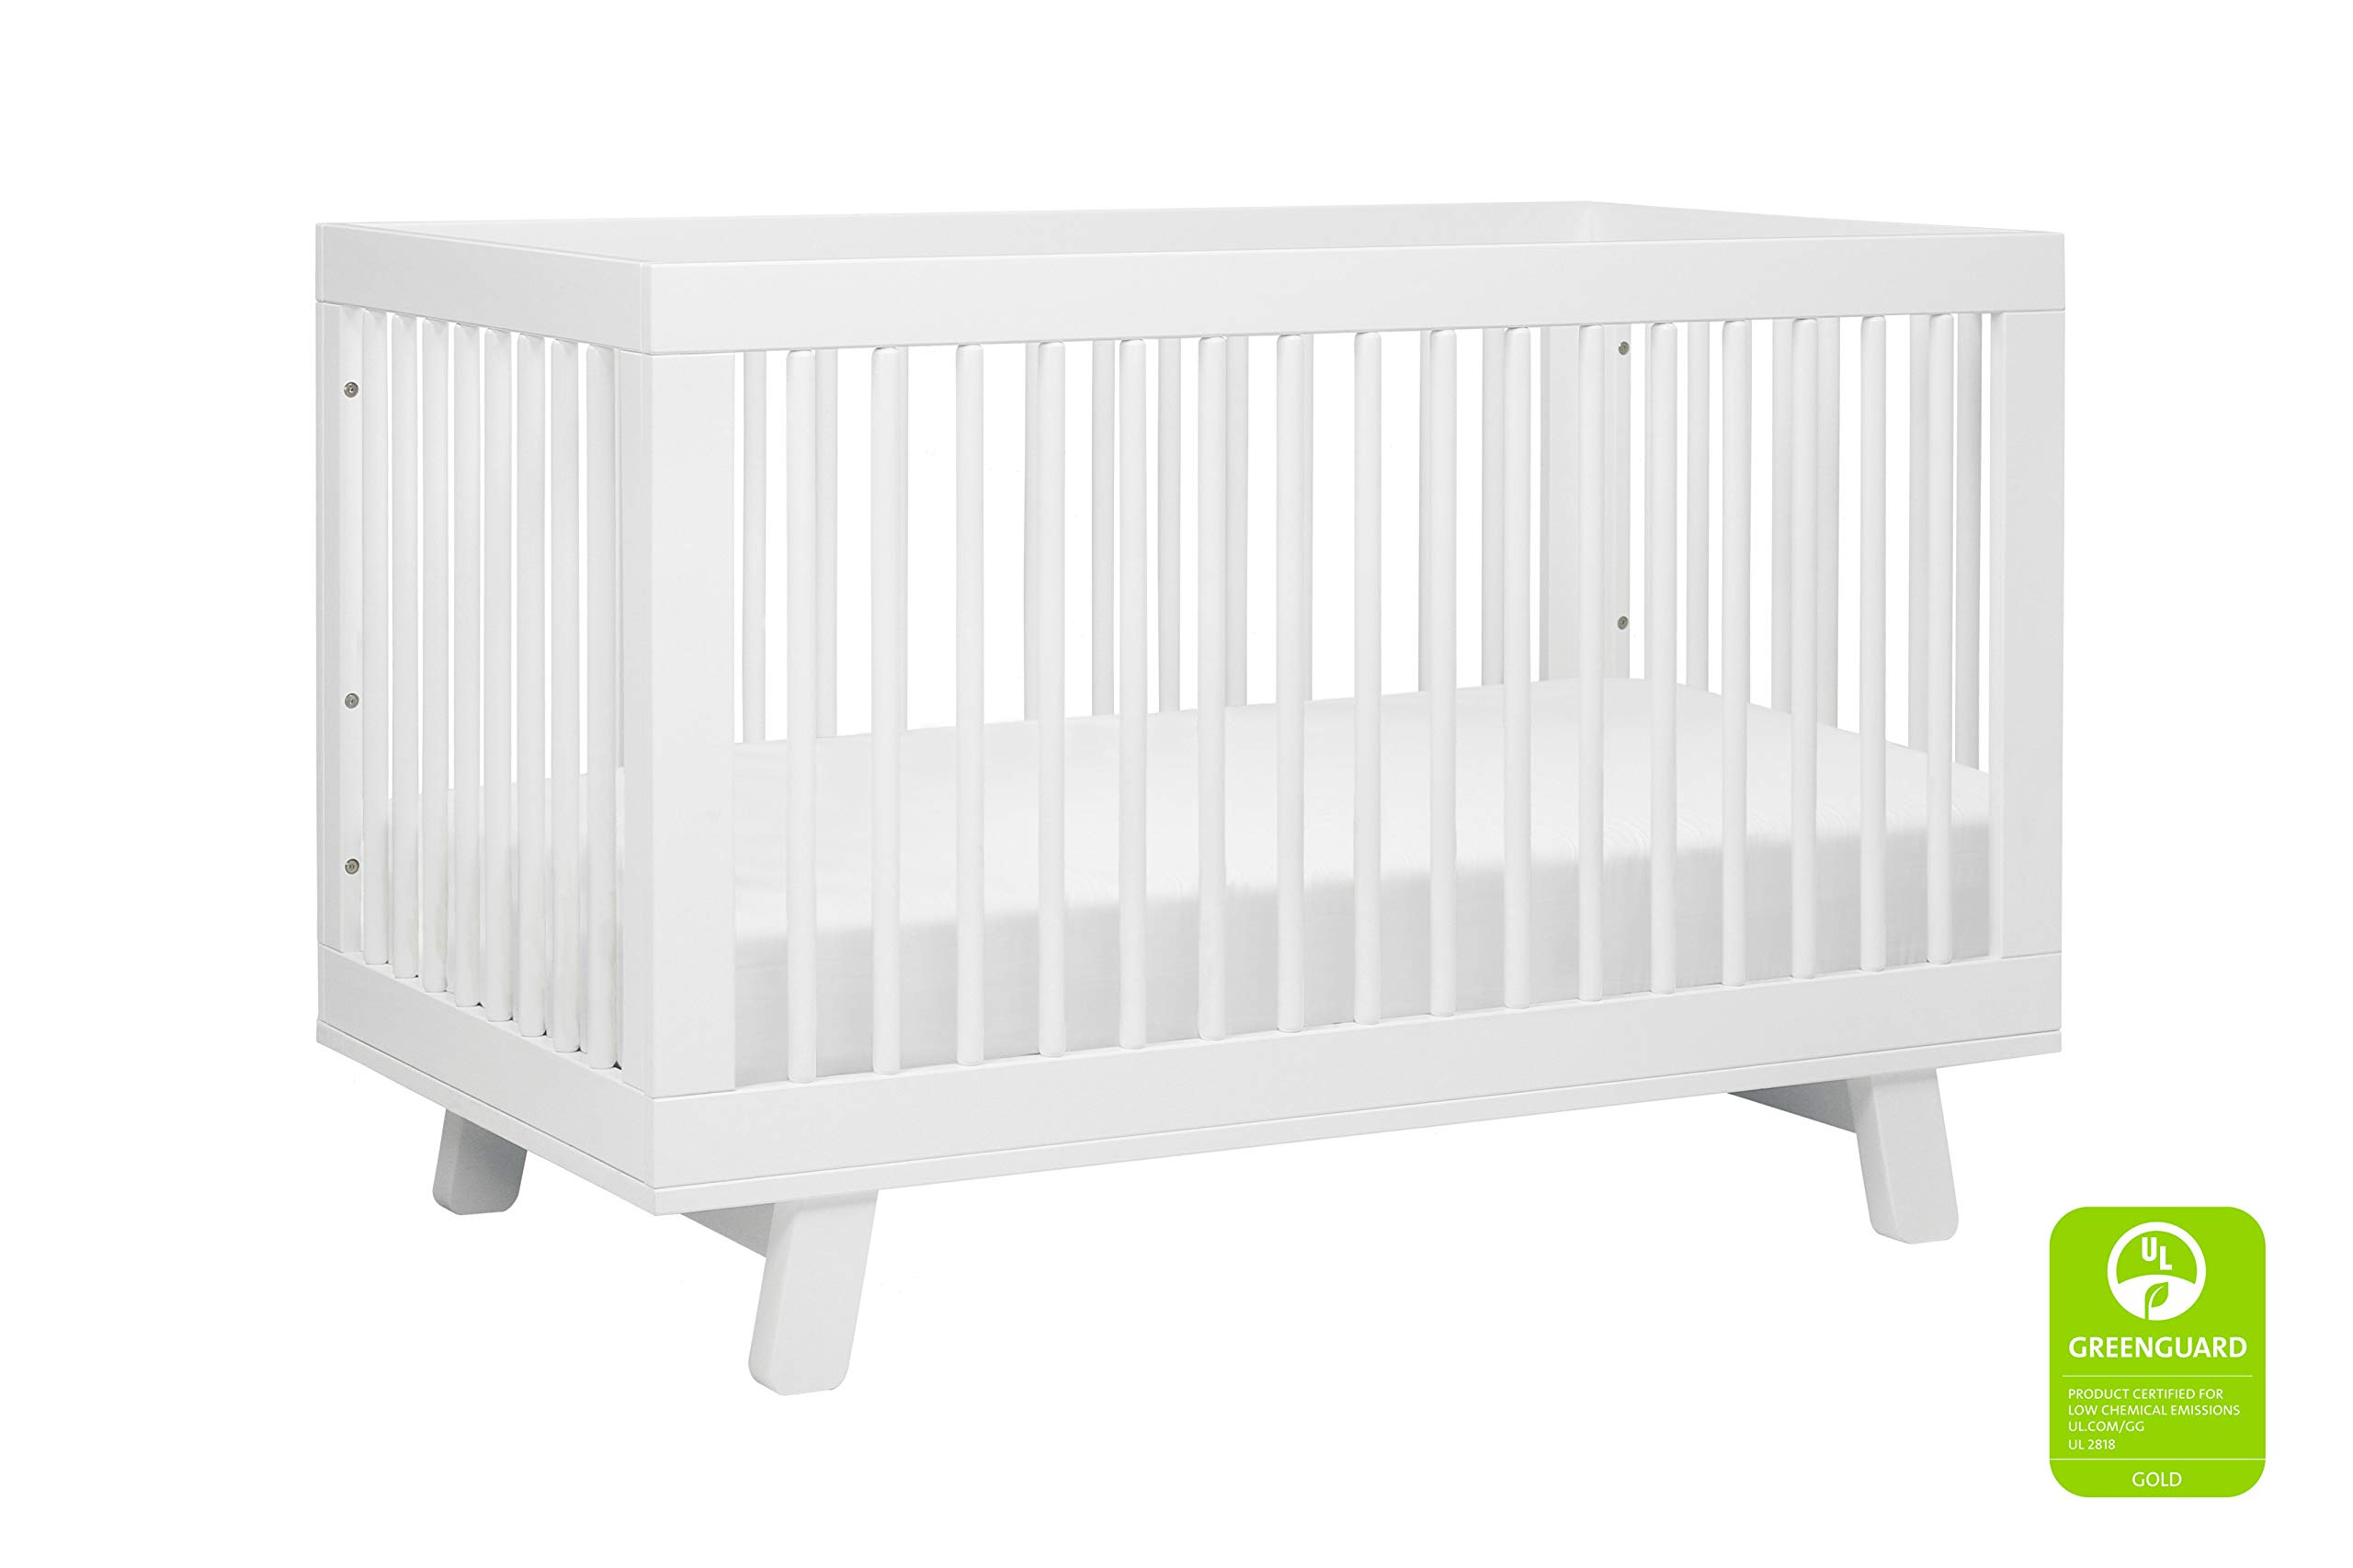 Babyletto Hudson 3-in-1 Convertible Crib with Toddler Bed Conversion Kit, White by Babyletto